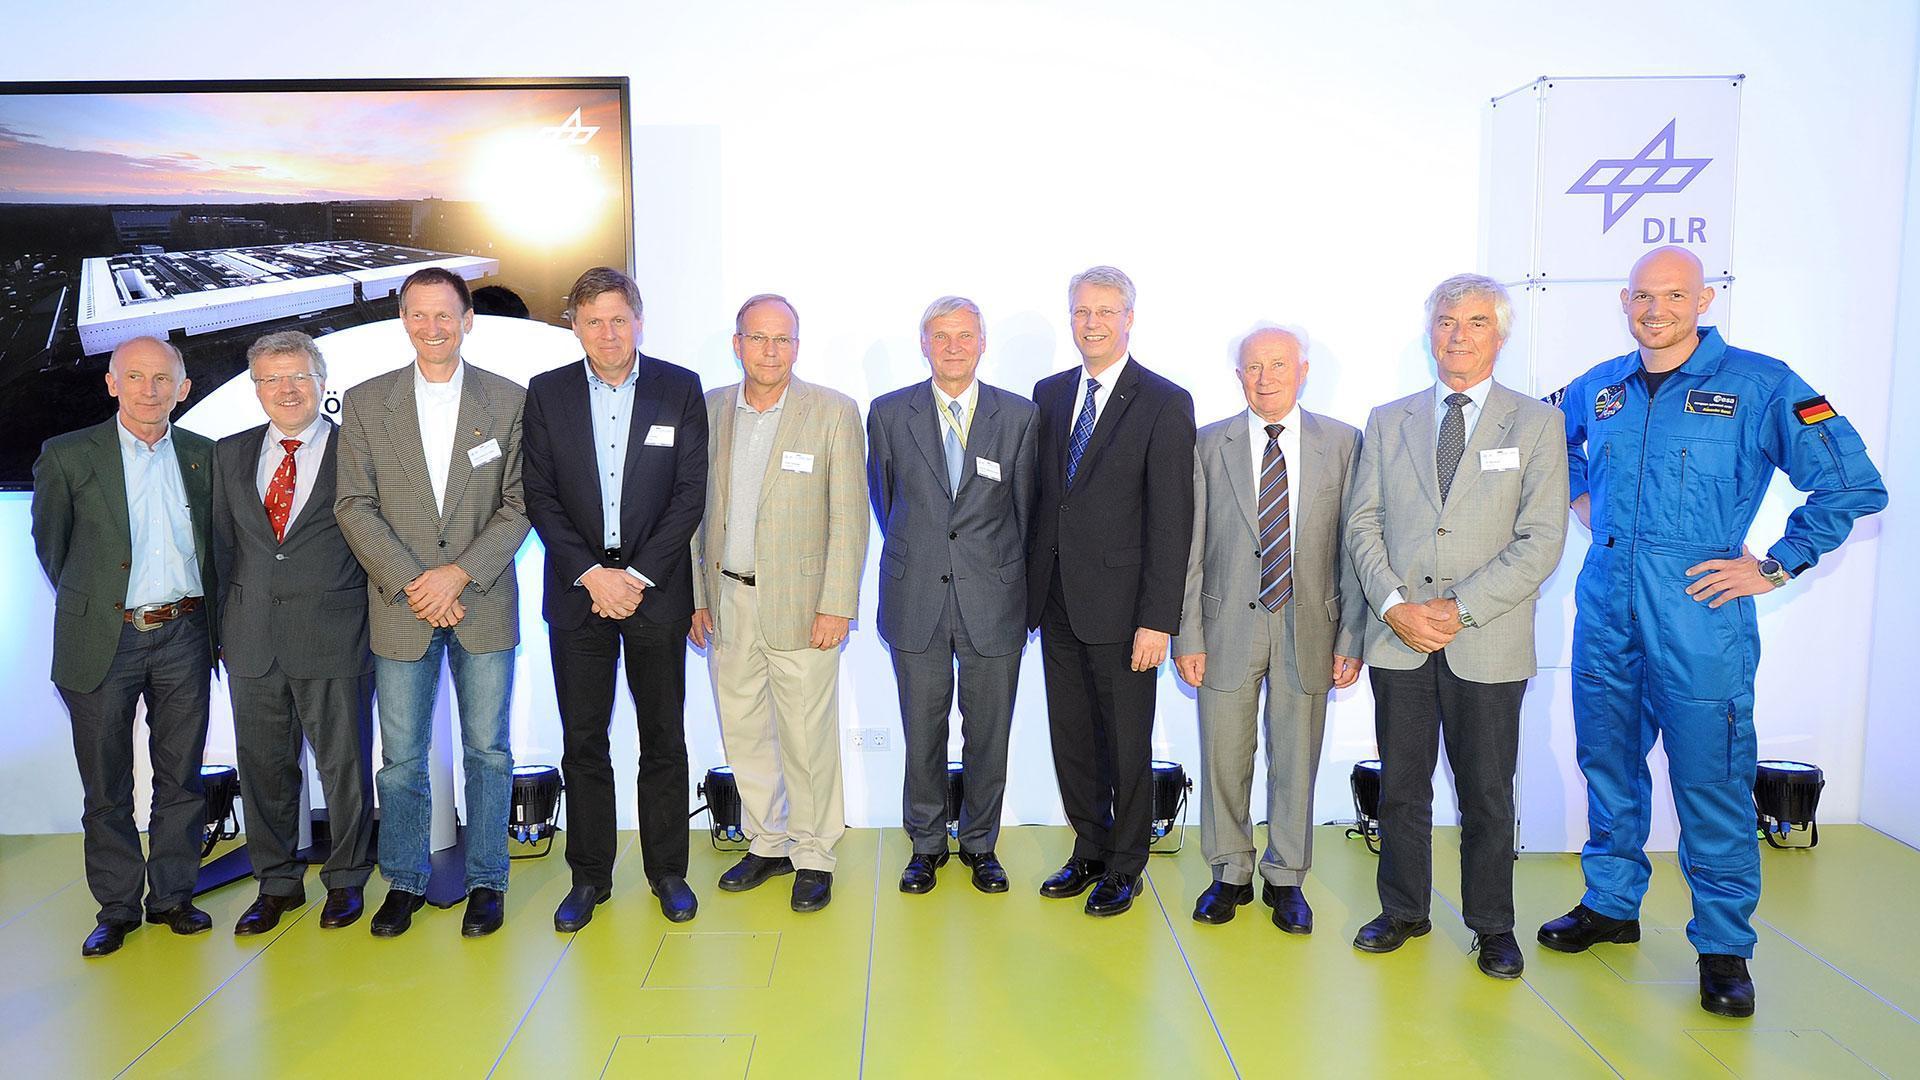 Ten German astronauts were present at the opening of :envihab in 2013